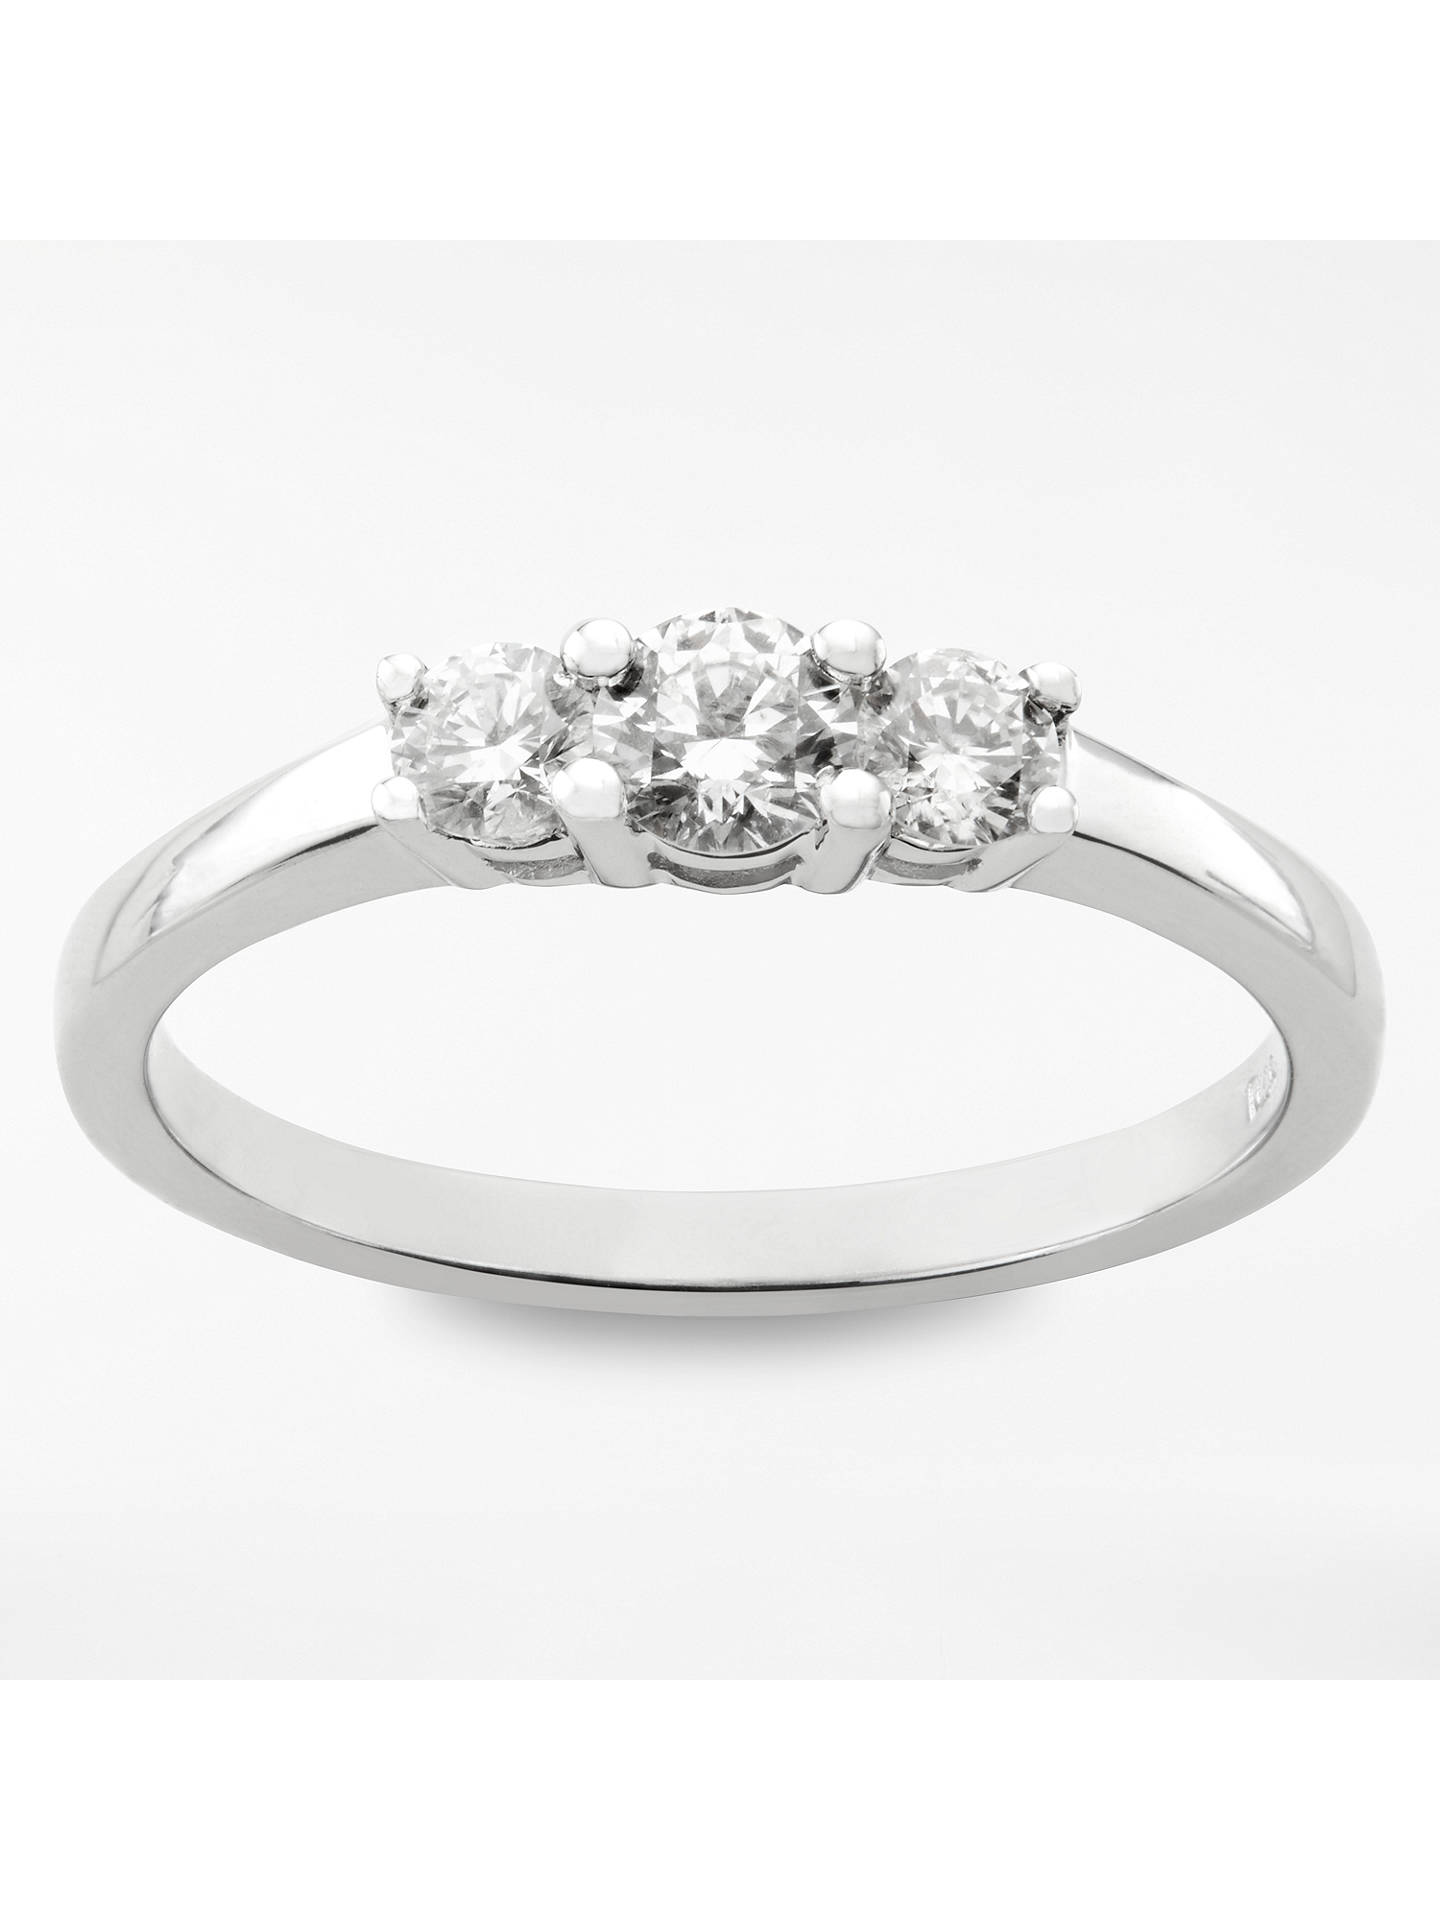 d49f7a2269686 Mogul 18ct White Gold Round Brilliant Diamond Trilogy Engagement Ring, 0.5ct